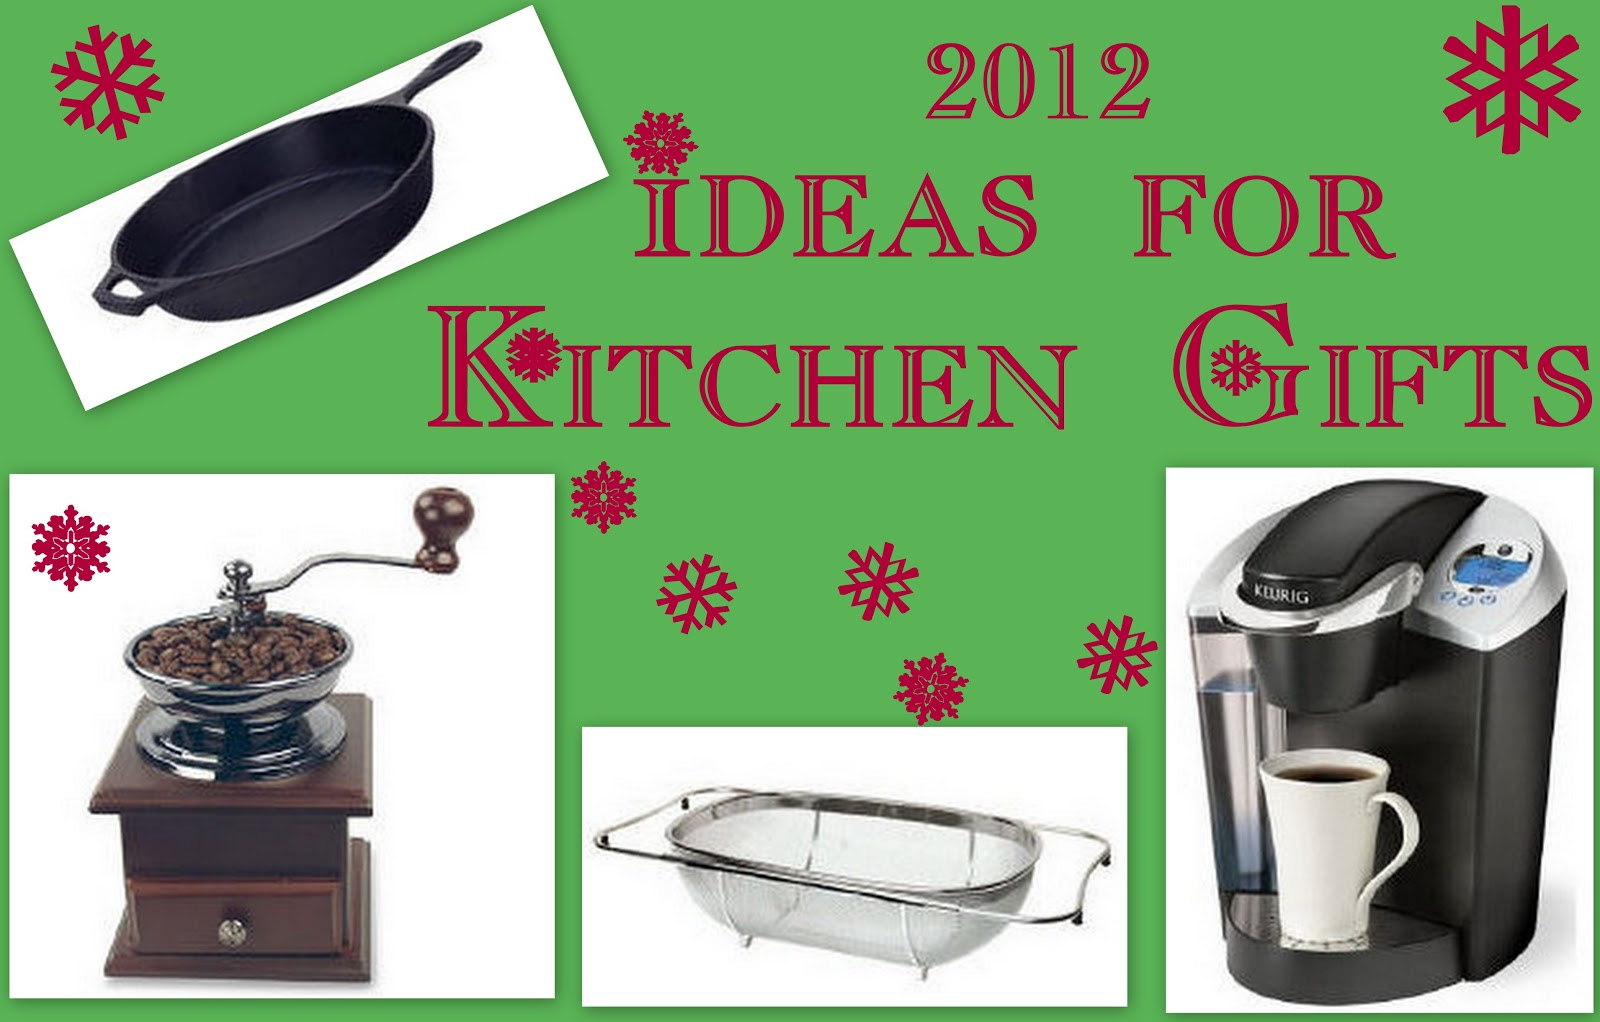 Pressure Cooking And Canning Kitchen Gift Ideas